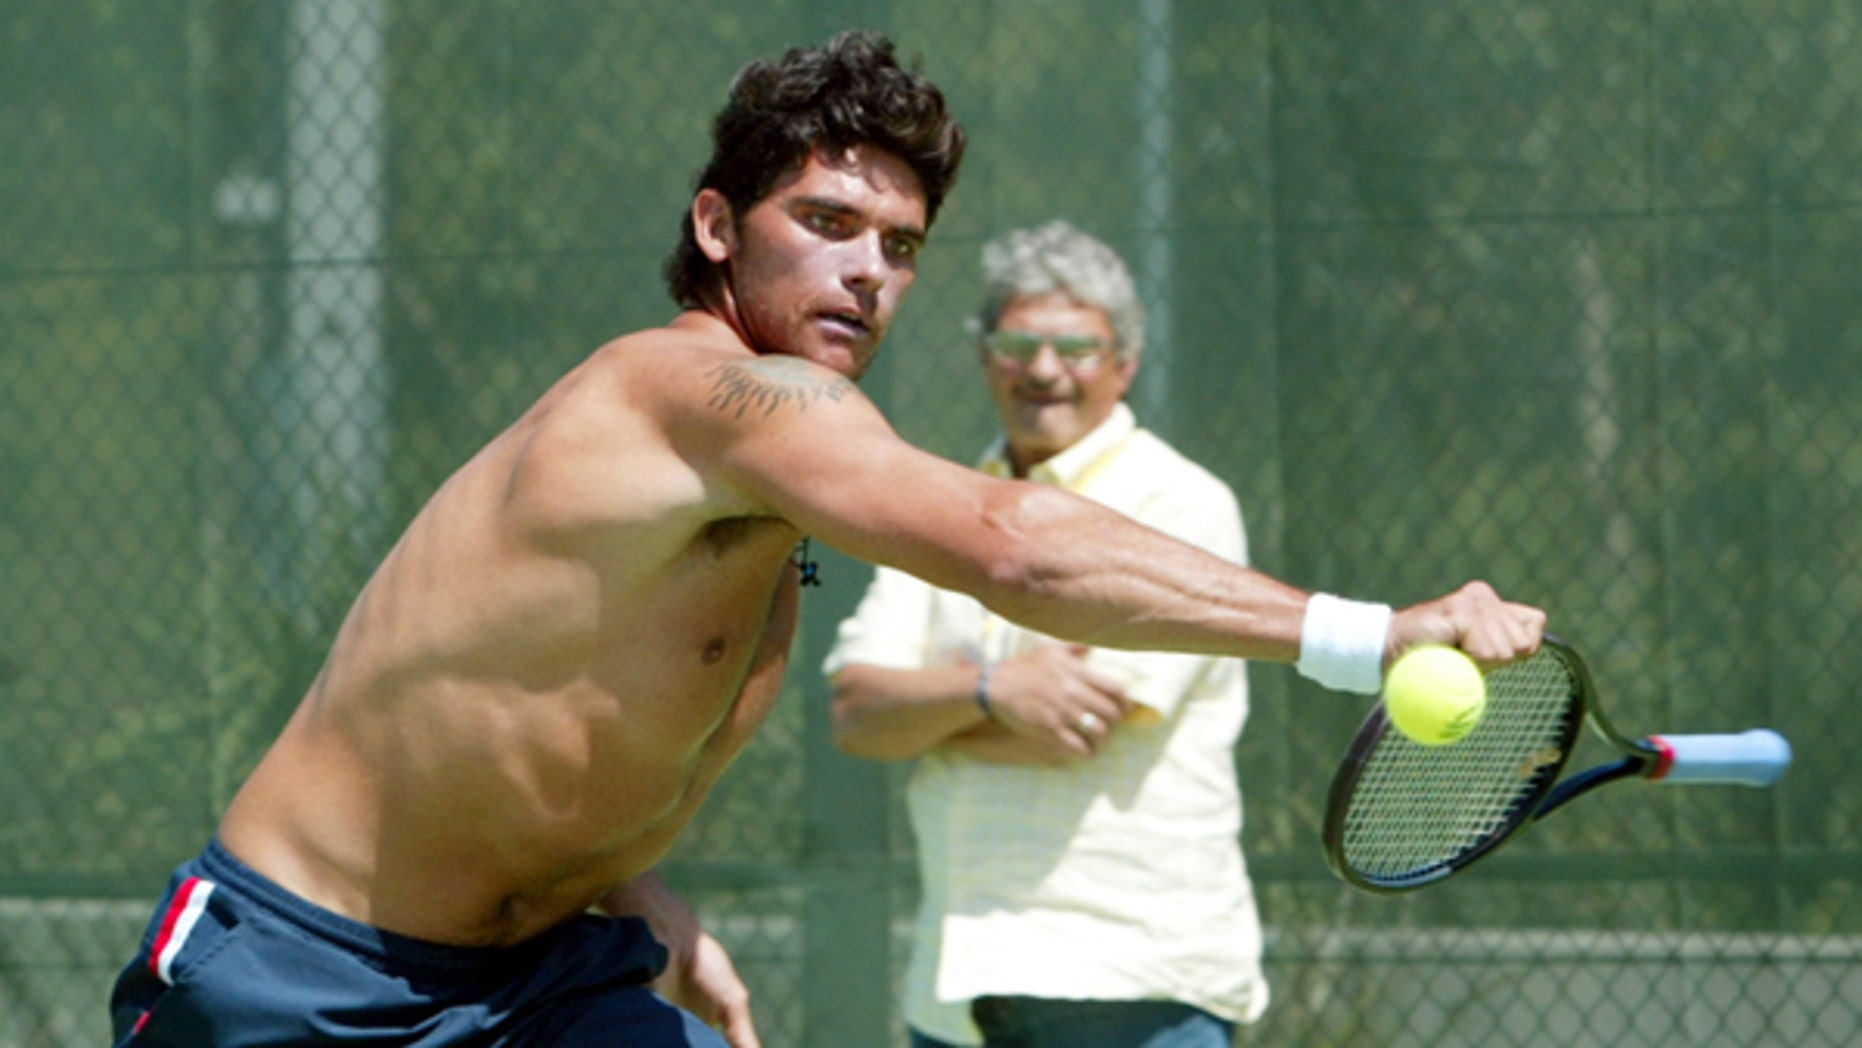 Mark Philippoussis of Australia plays at the ball with the handle of his racket as his father Nick looks on during practice at the Sydney International Tennis Center in January 2004.